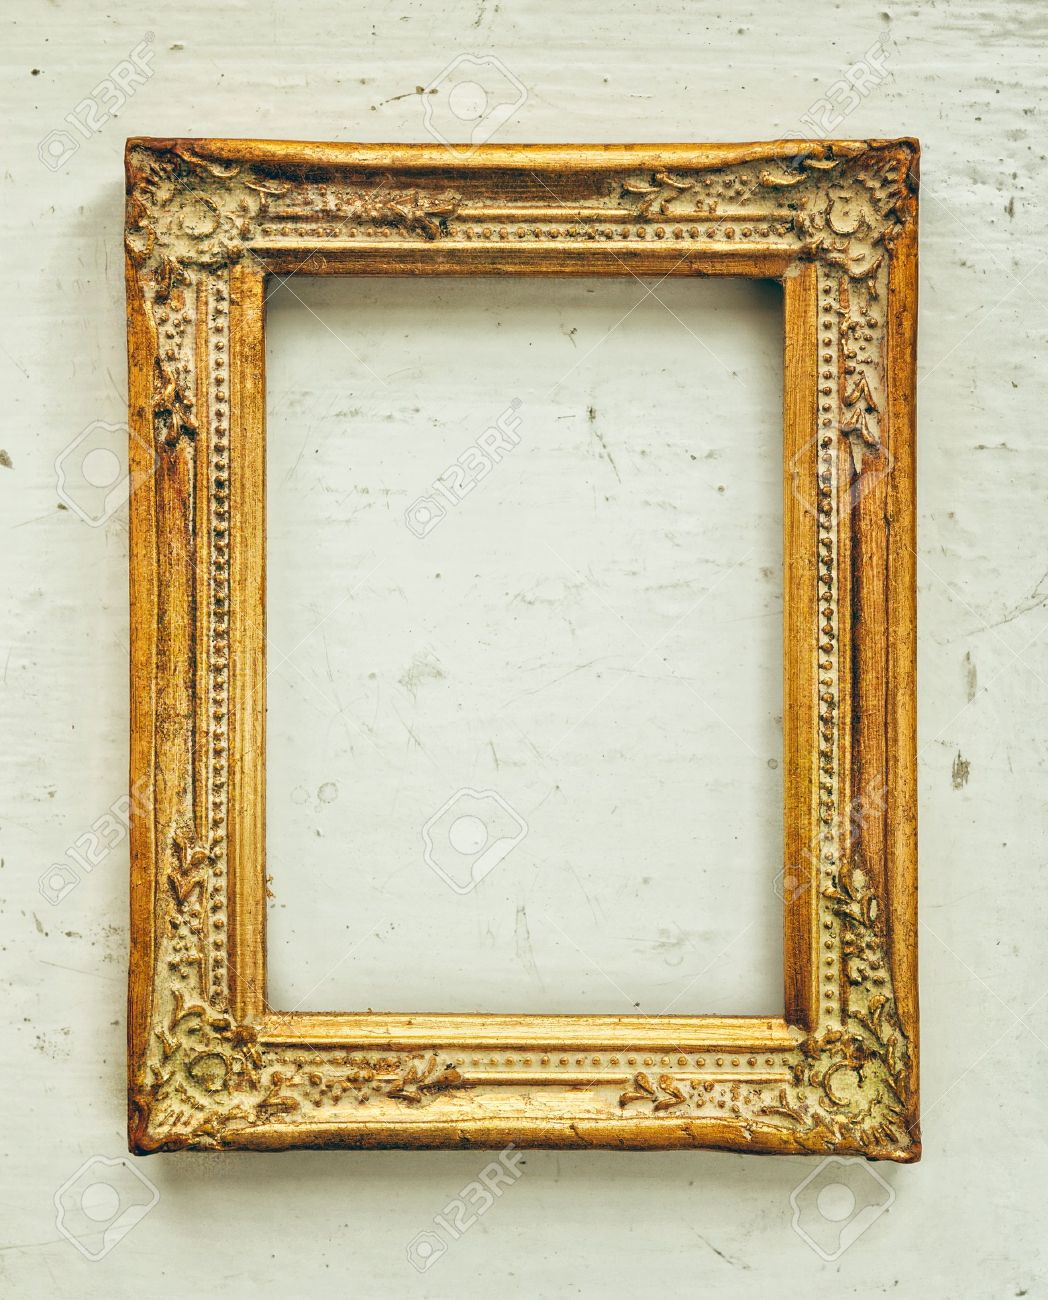 golden old frame on the grunge background stock photo 20610378